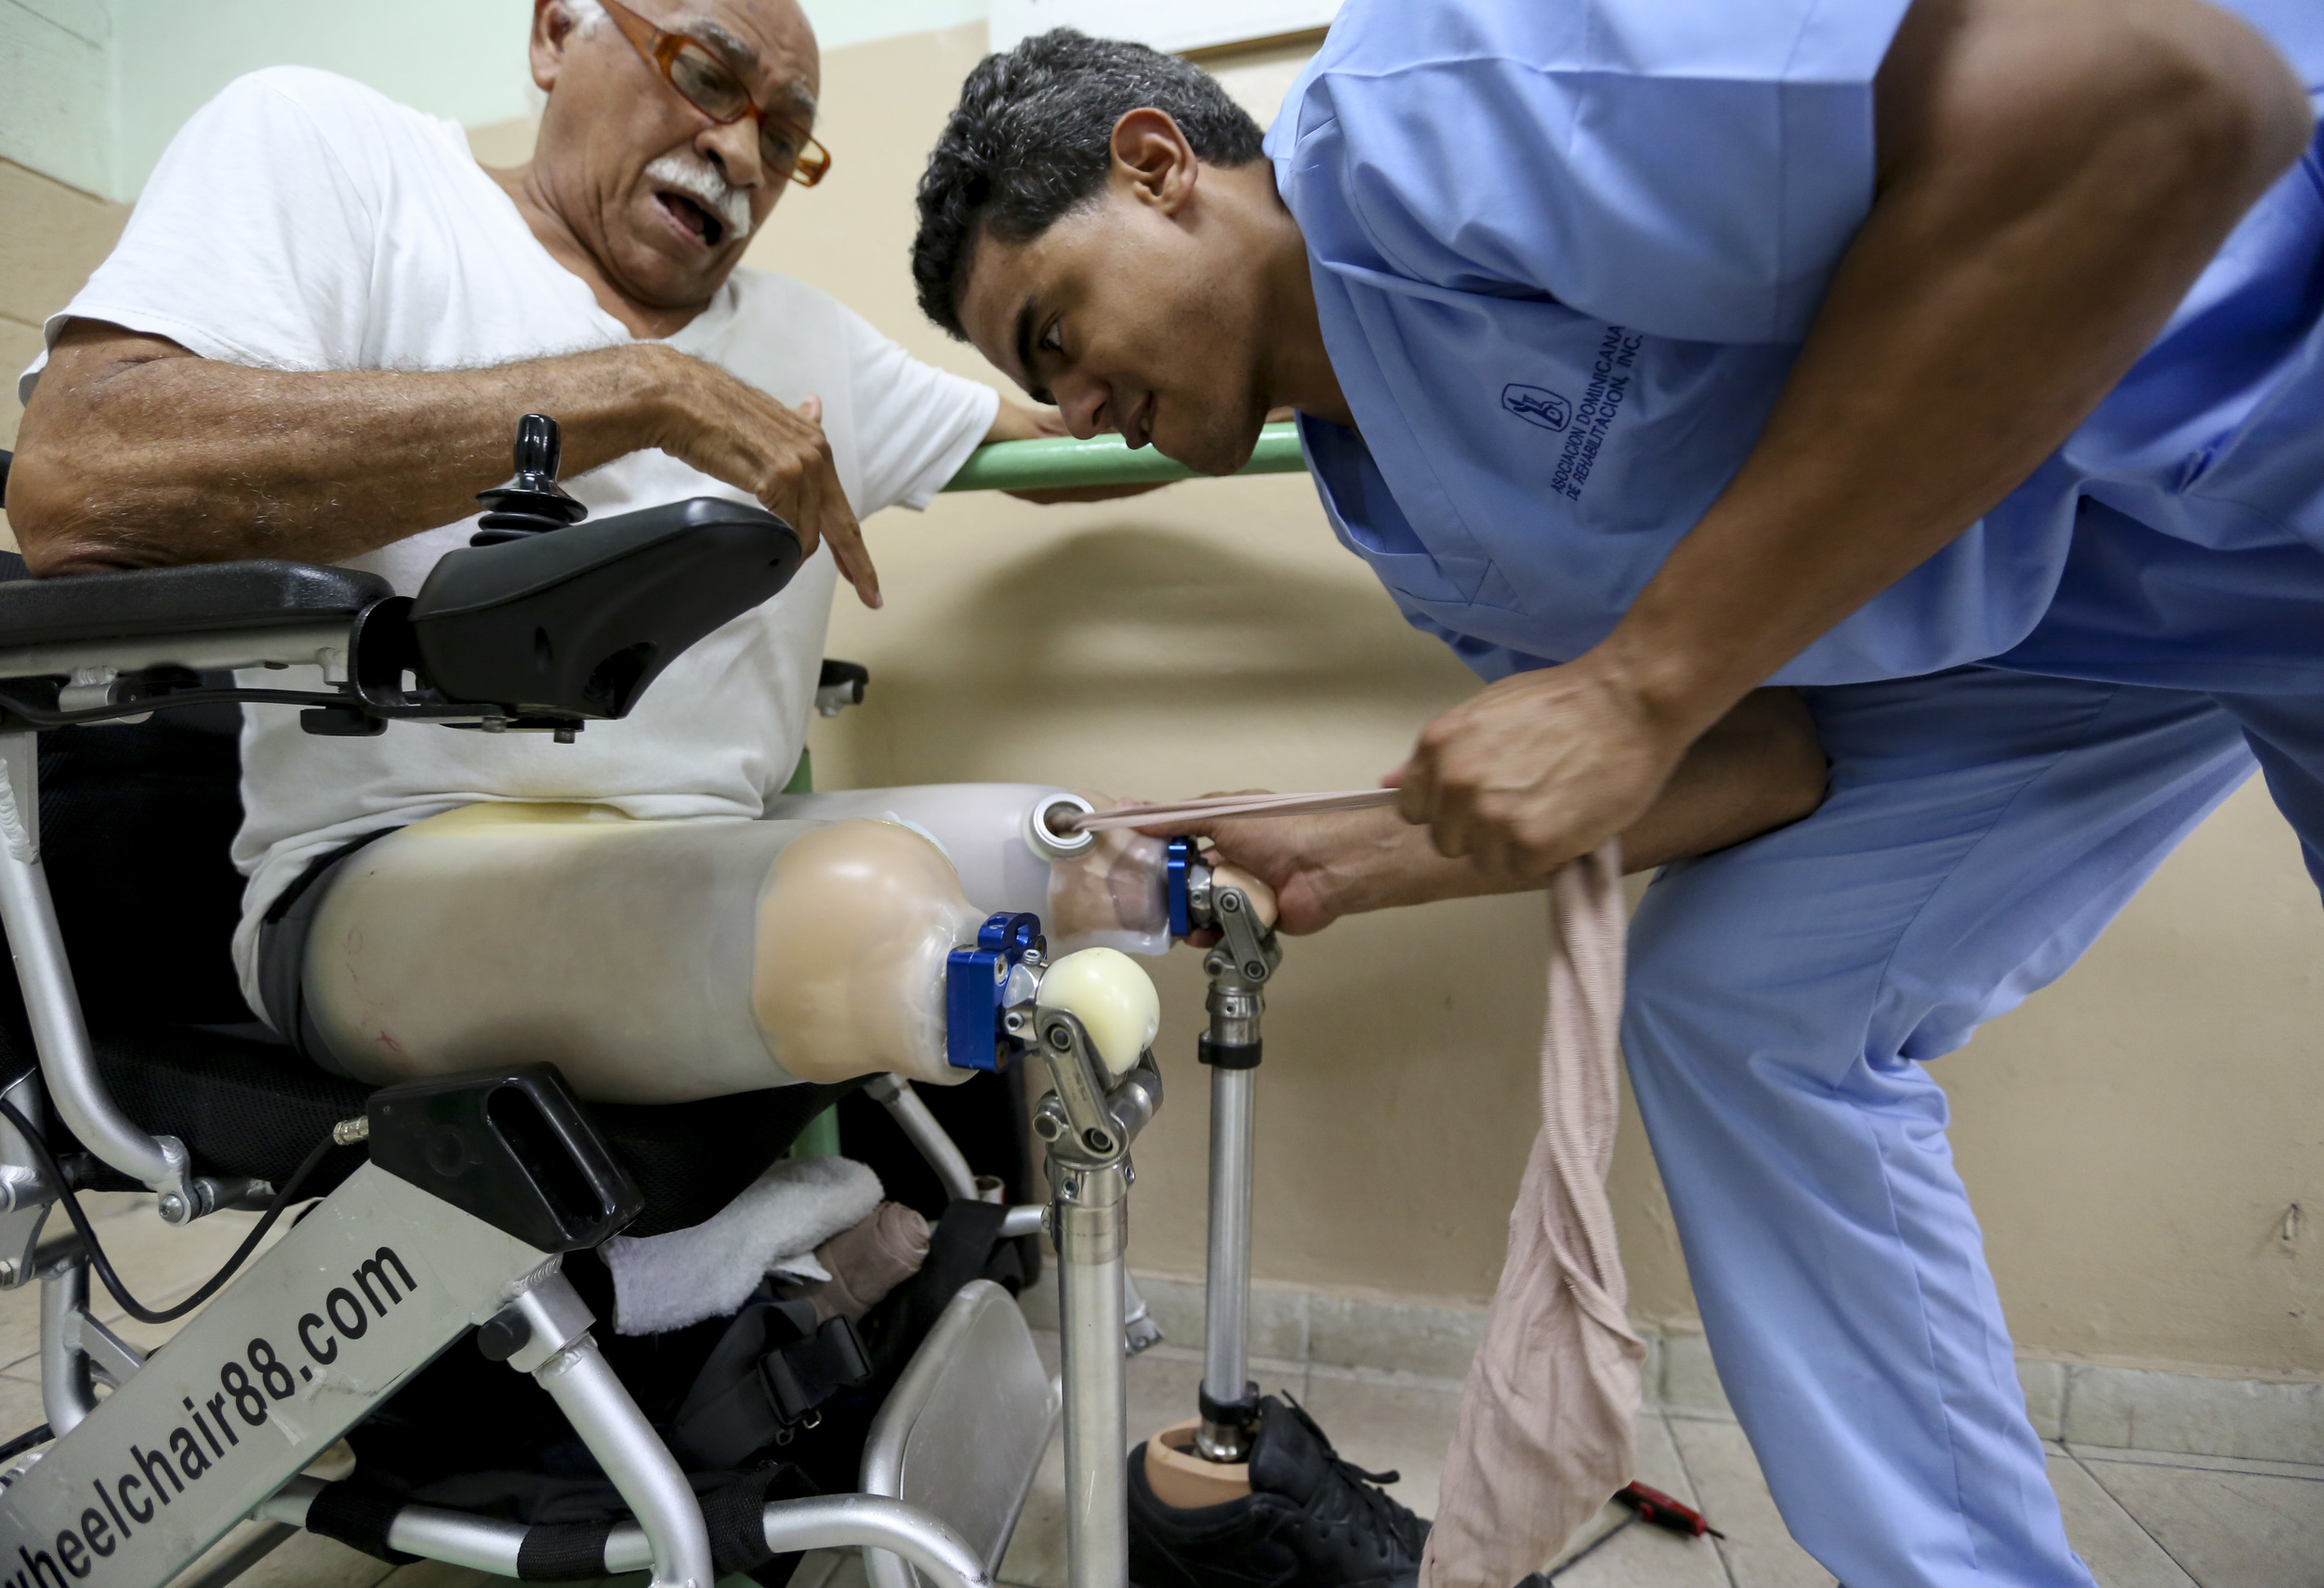 A double amputee gets his prosthetics fitted in Santo Domingo, Dominican Republic.